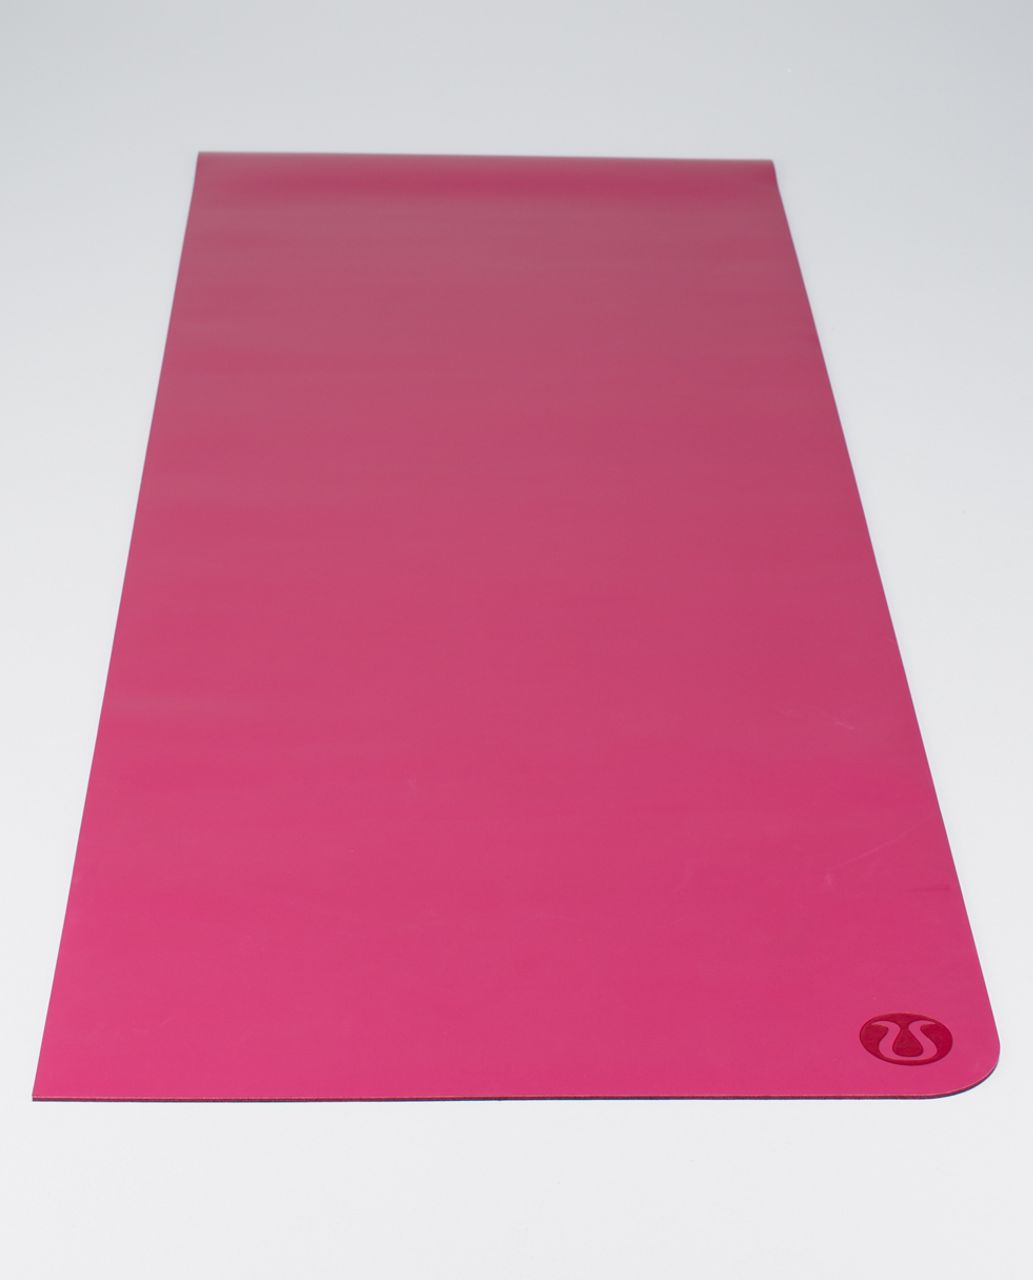 Lululemon The Mat - Bumble Berry / Bumble Berry / Bordeaux Drama